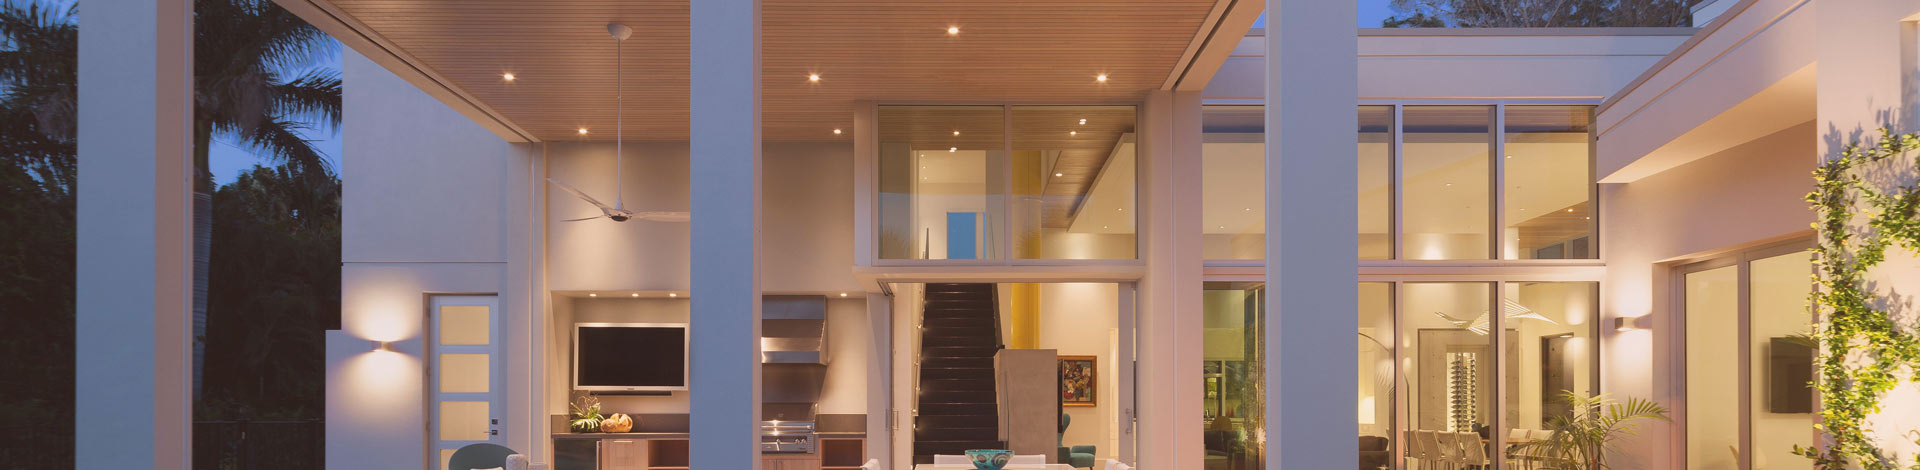 Outdoor Kitchen | Outside Productions International